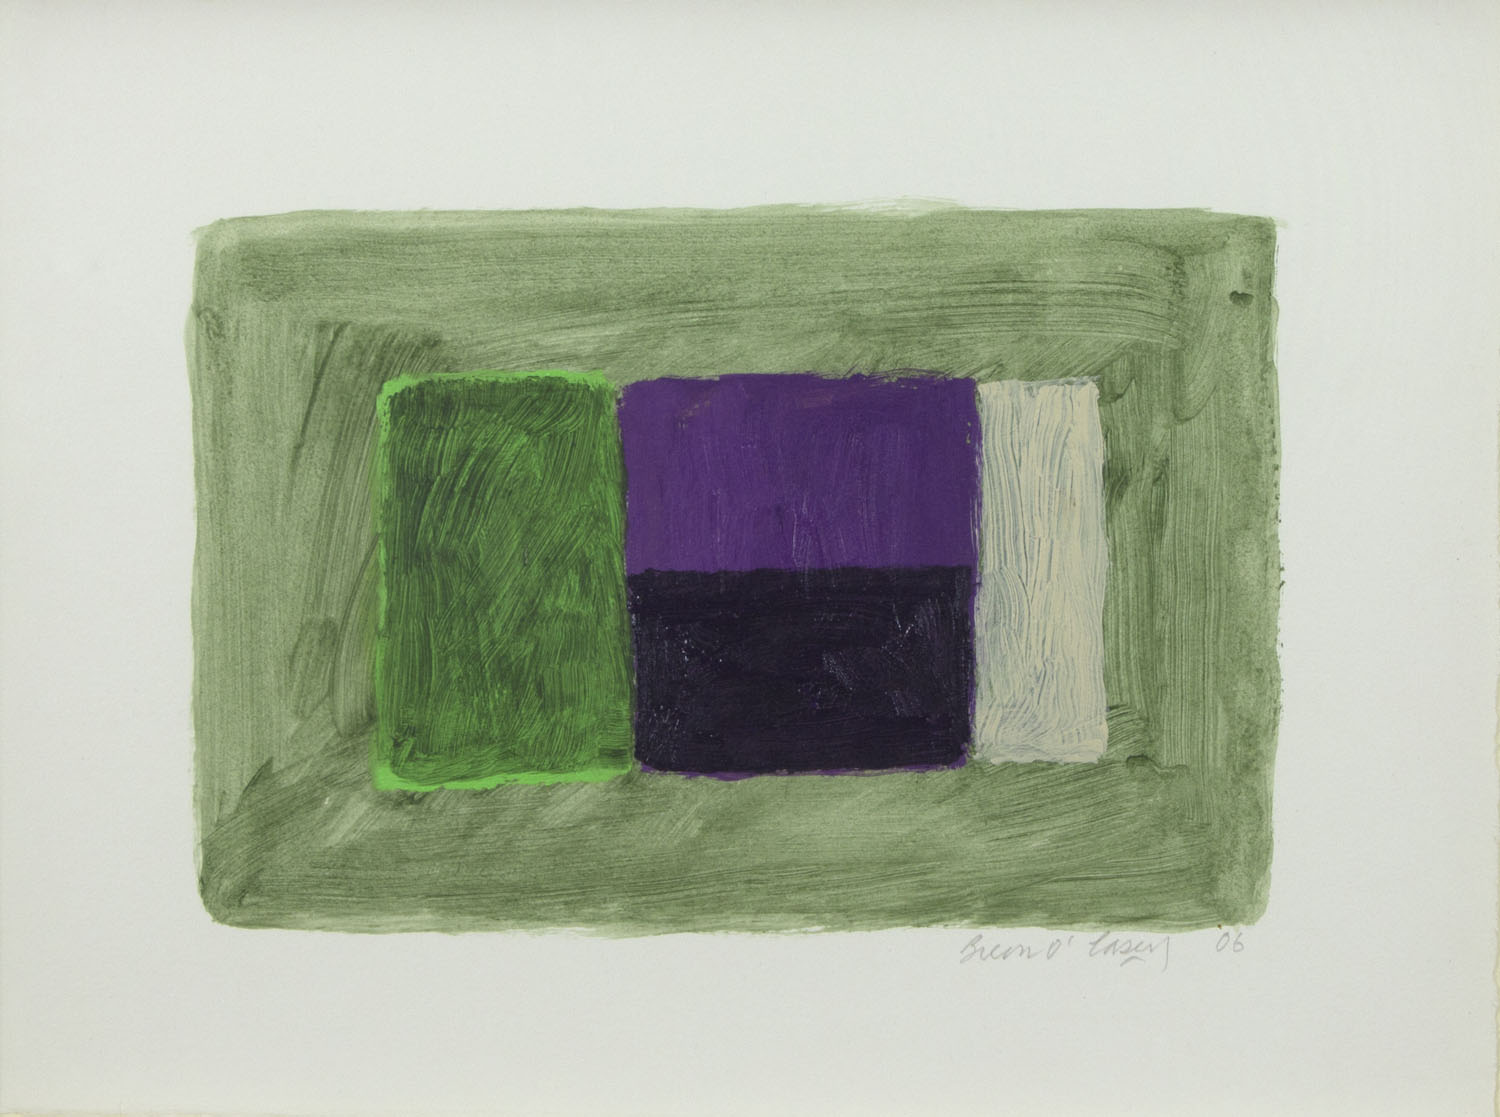 Breon O'Casey 'Green To The Side' 2006 acrylic on paper 28x37cm.jpg